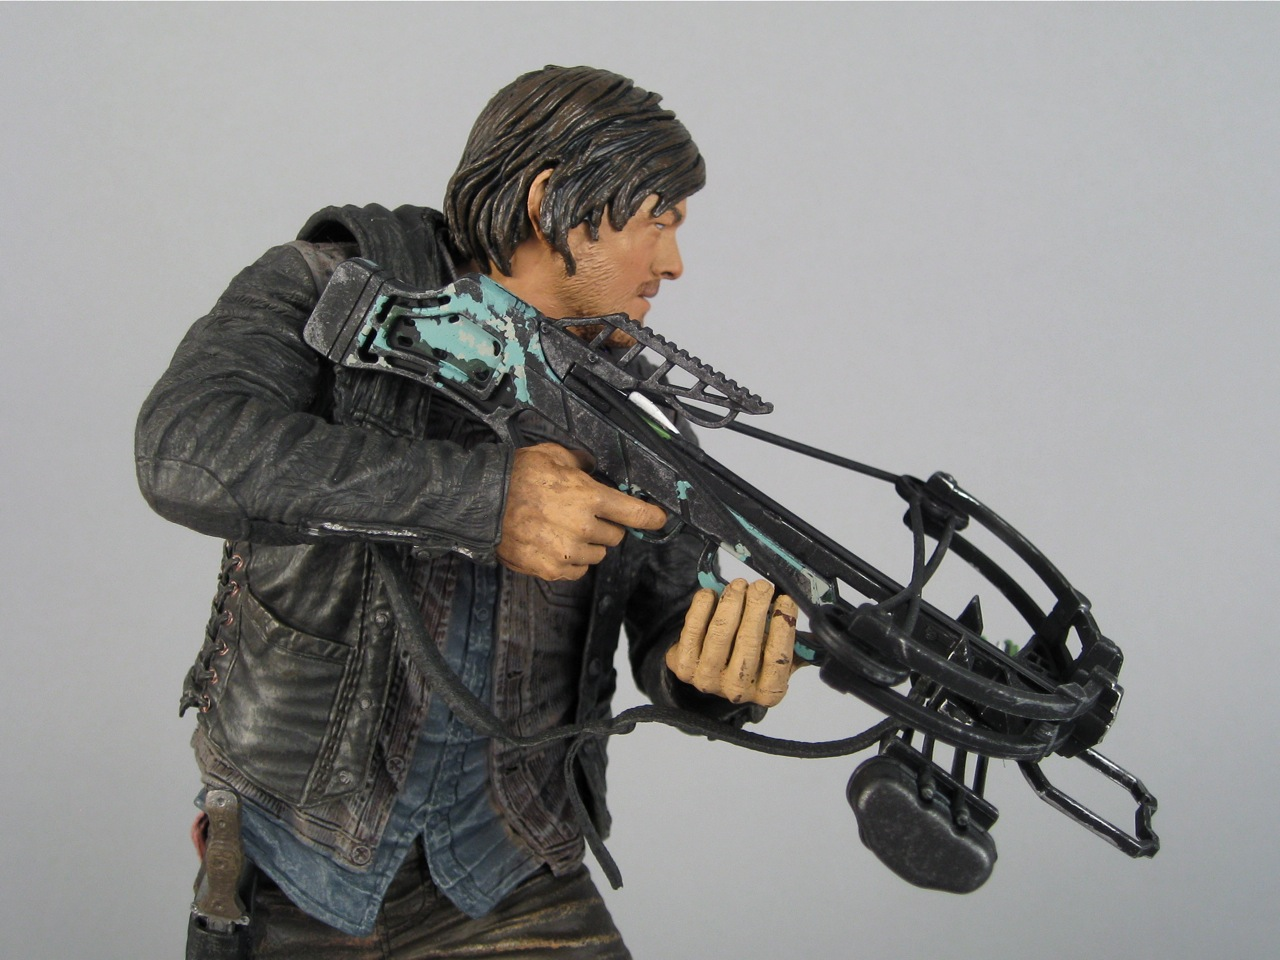 mcfarlane toys 10quot daryl dixon figure from quotthe walking